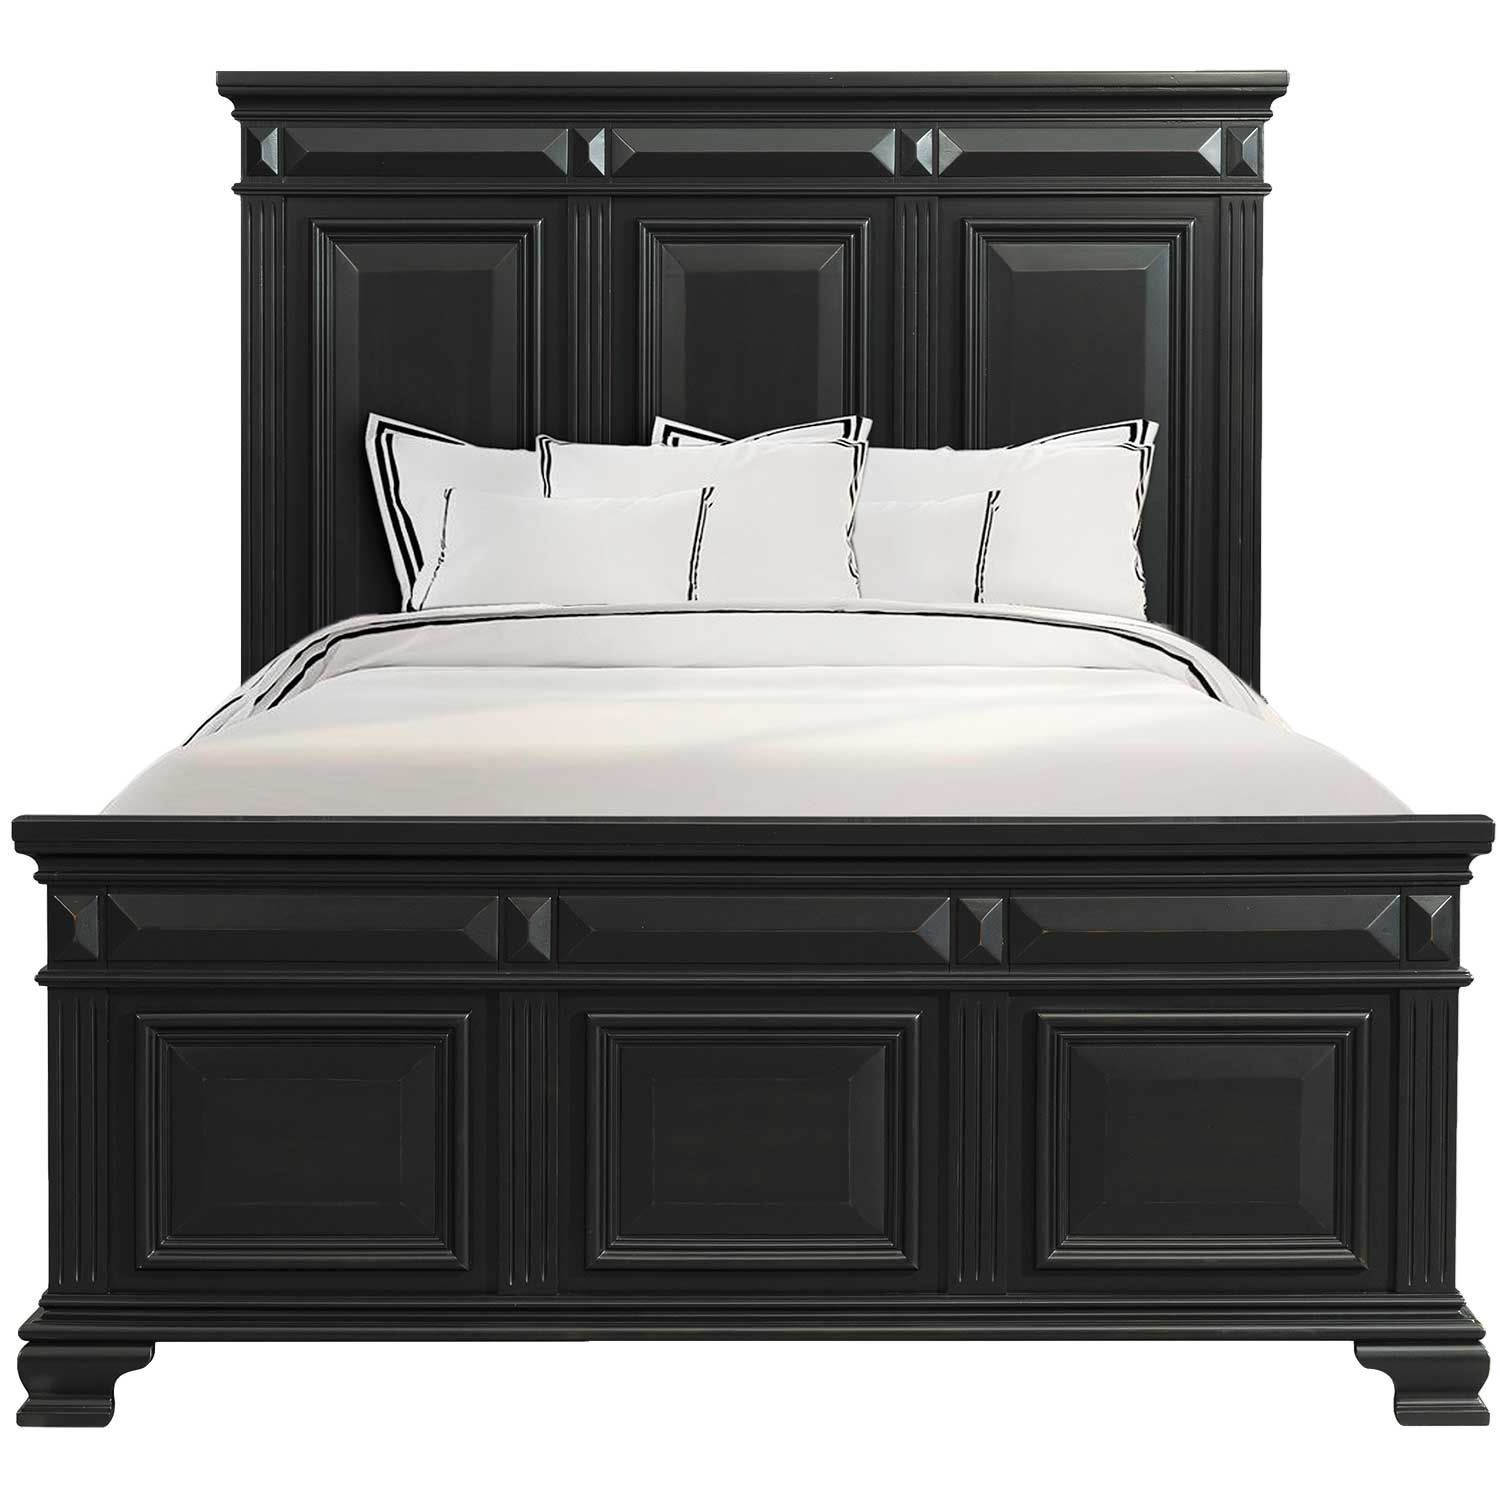 Picture of Calloway King Bed